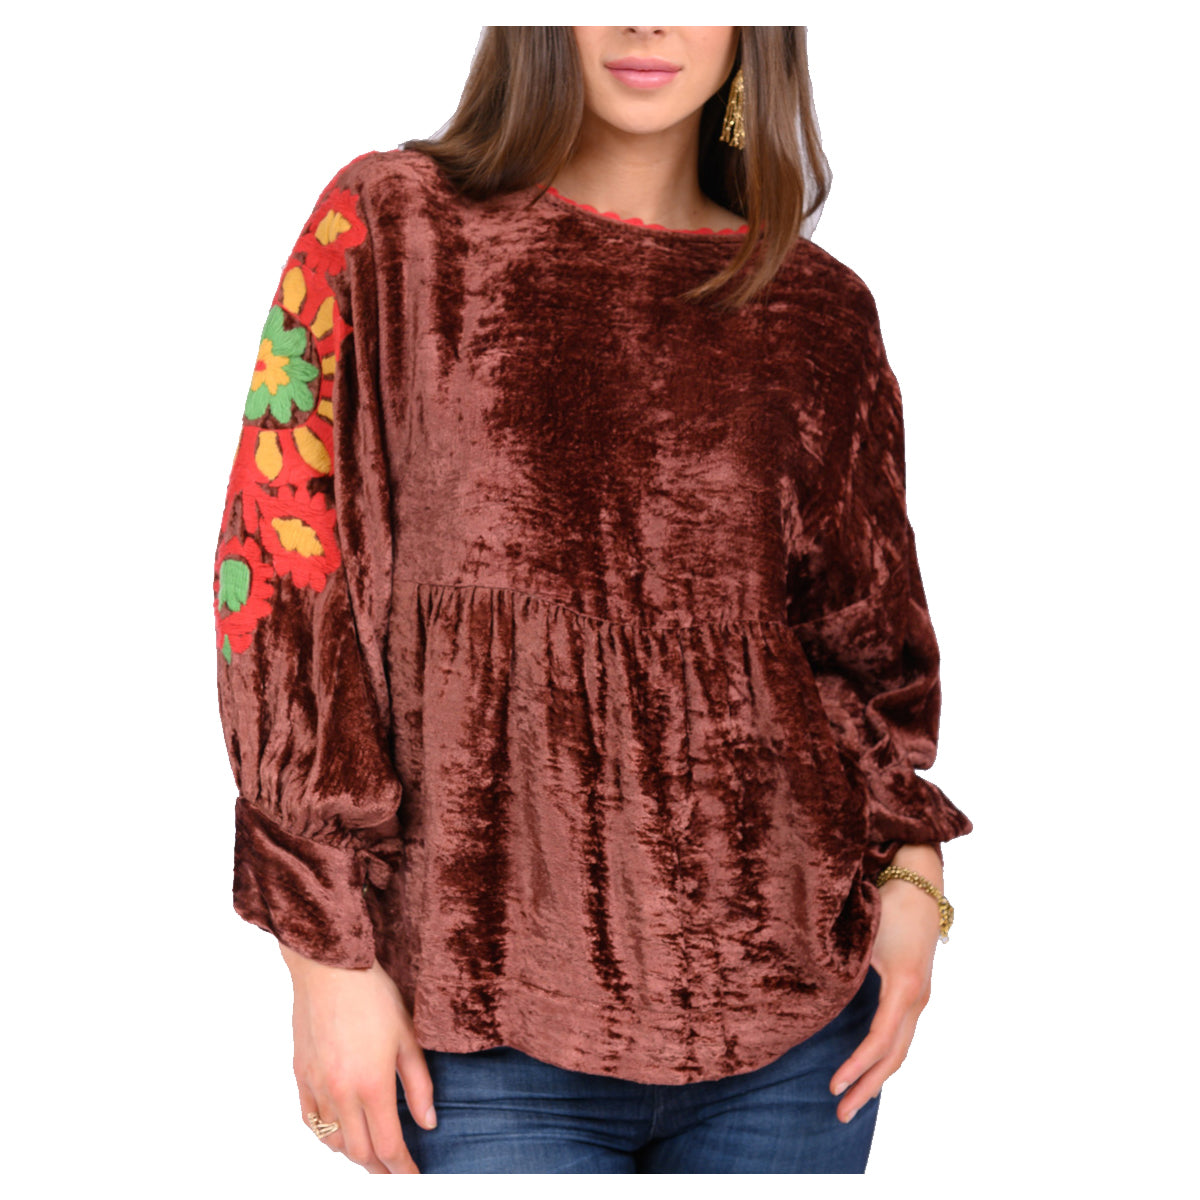 Ivy Jane Velvet Medallion Sleeve Embroidered Top - Rust